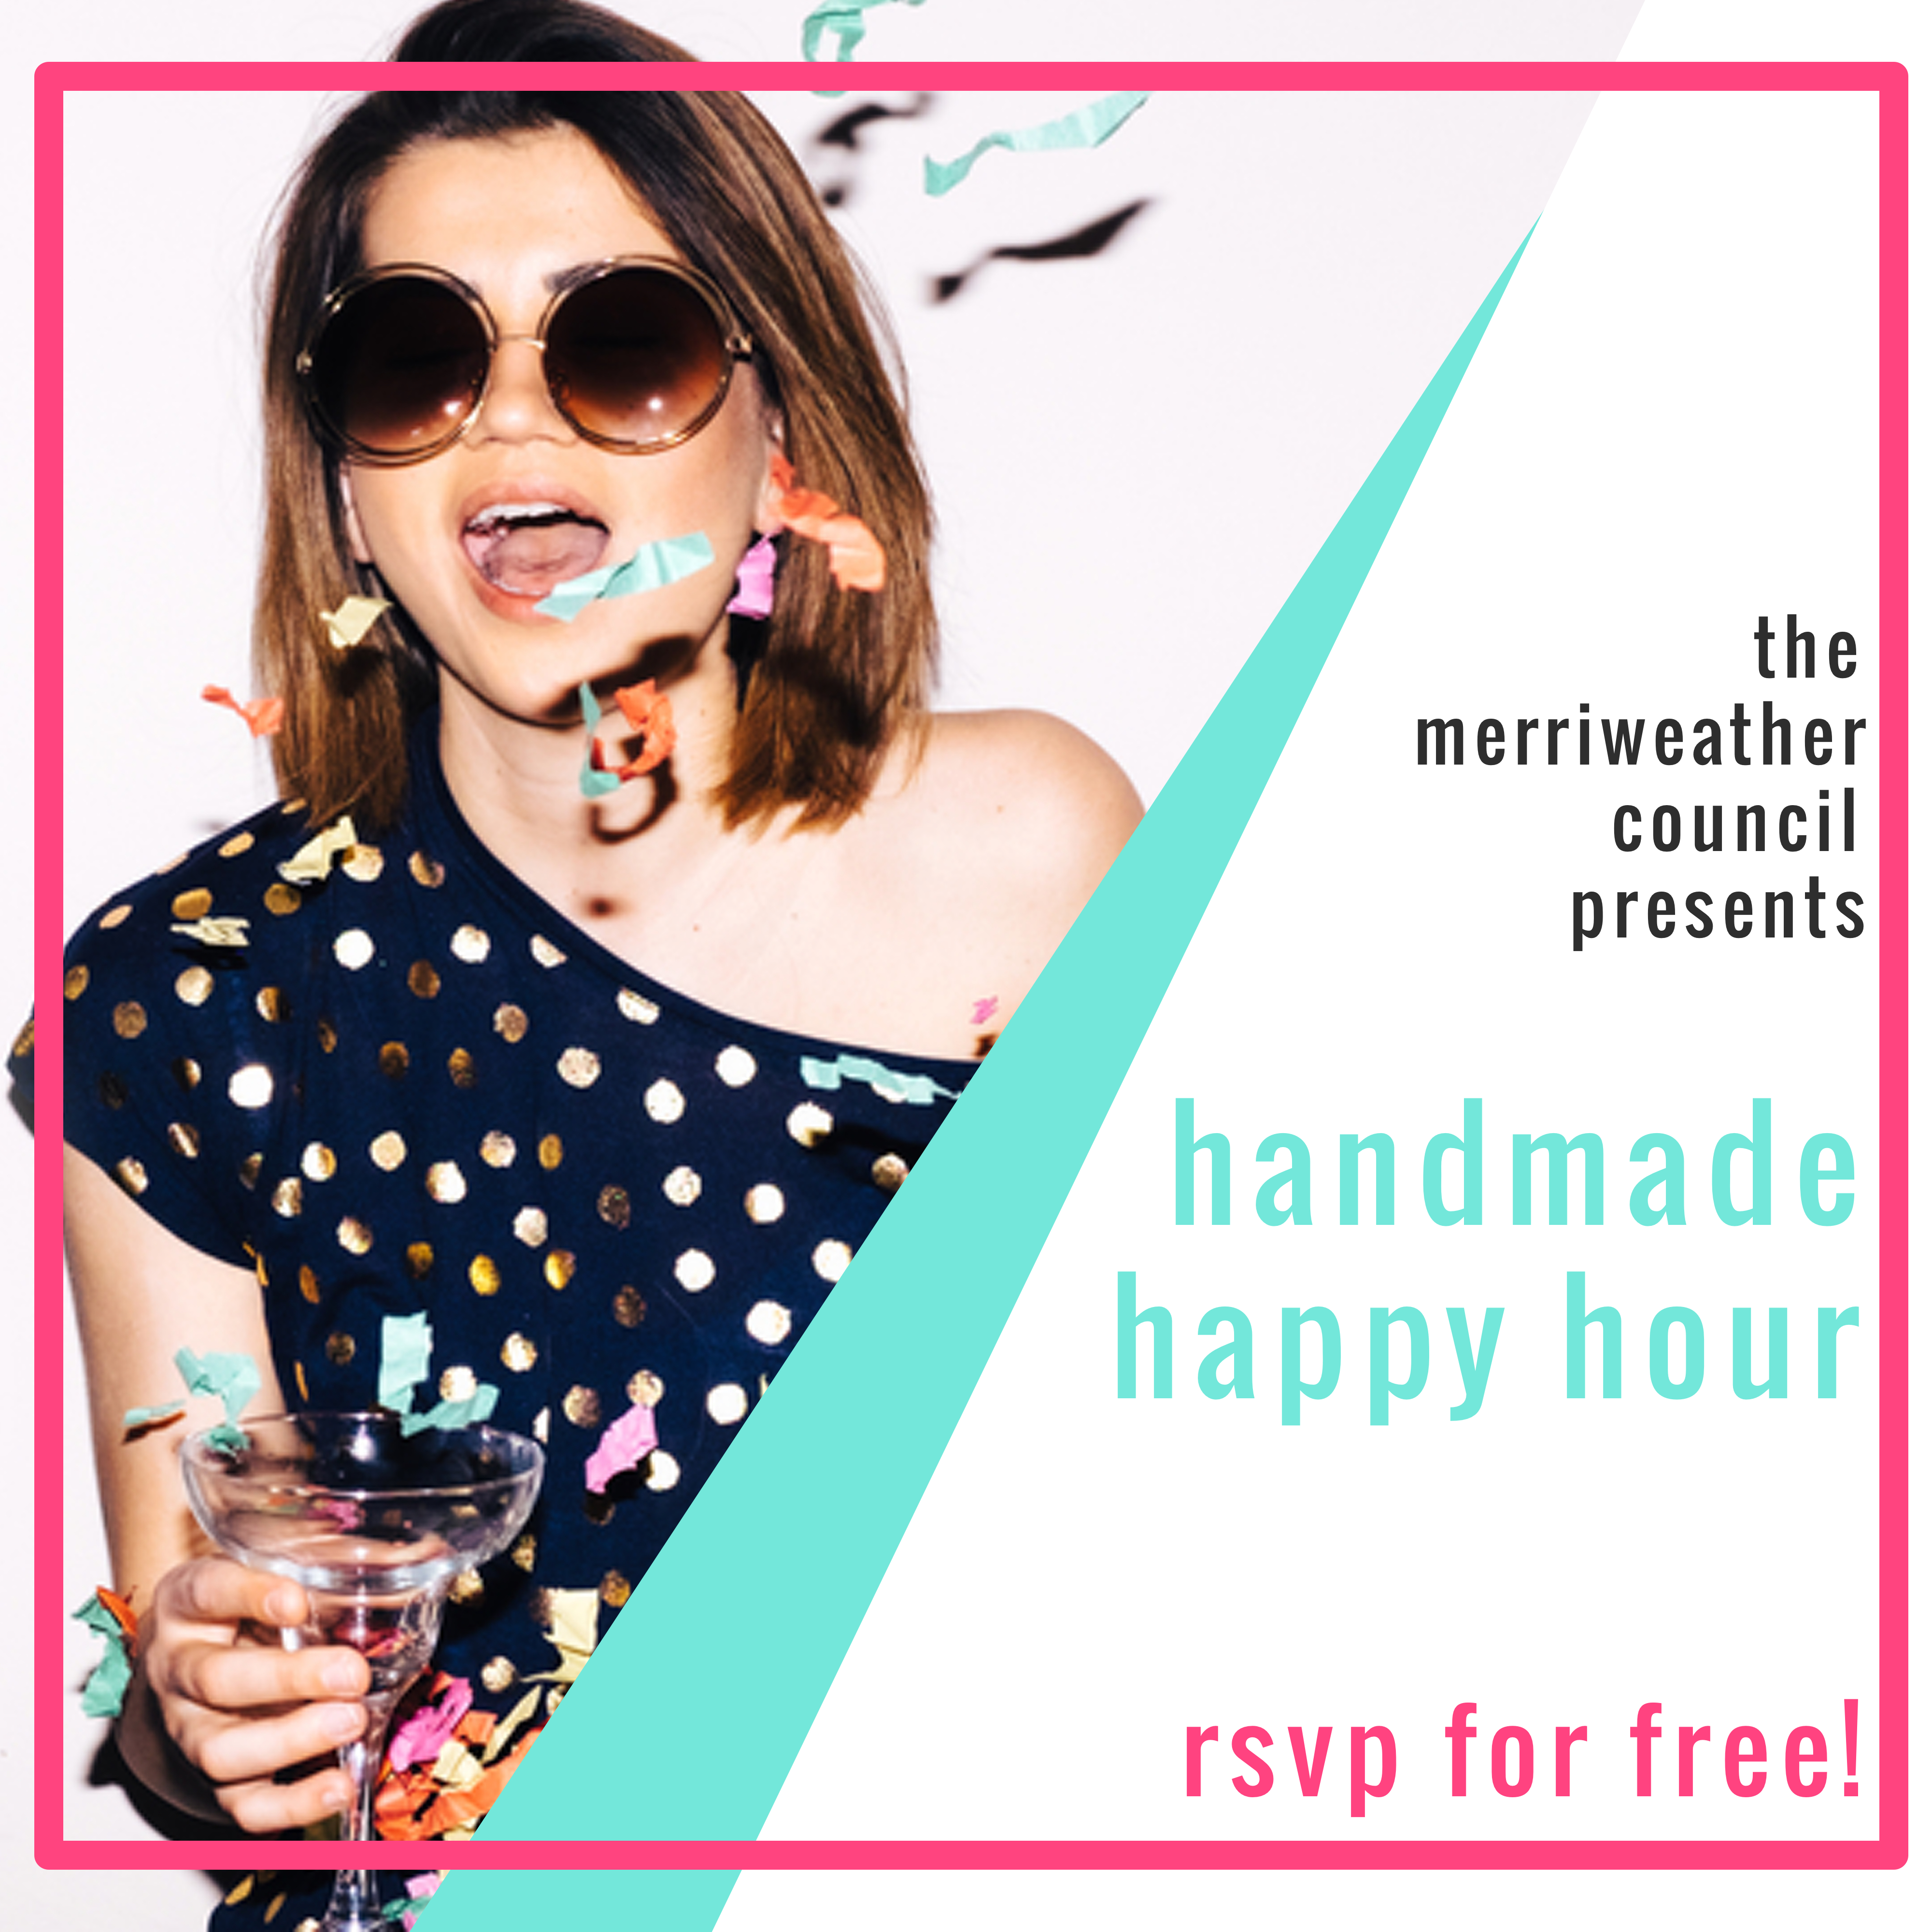 handmade happy hour | the merriweather council blog